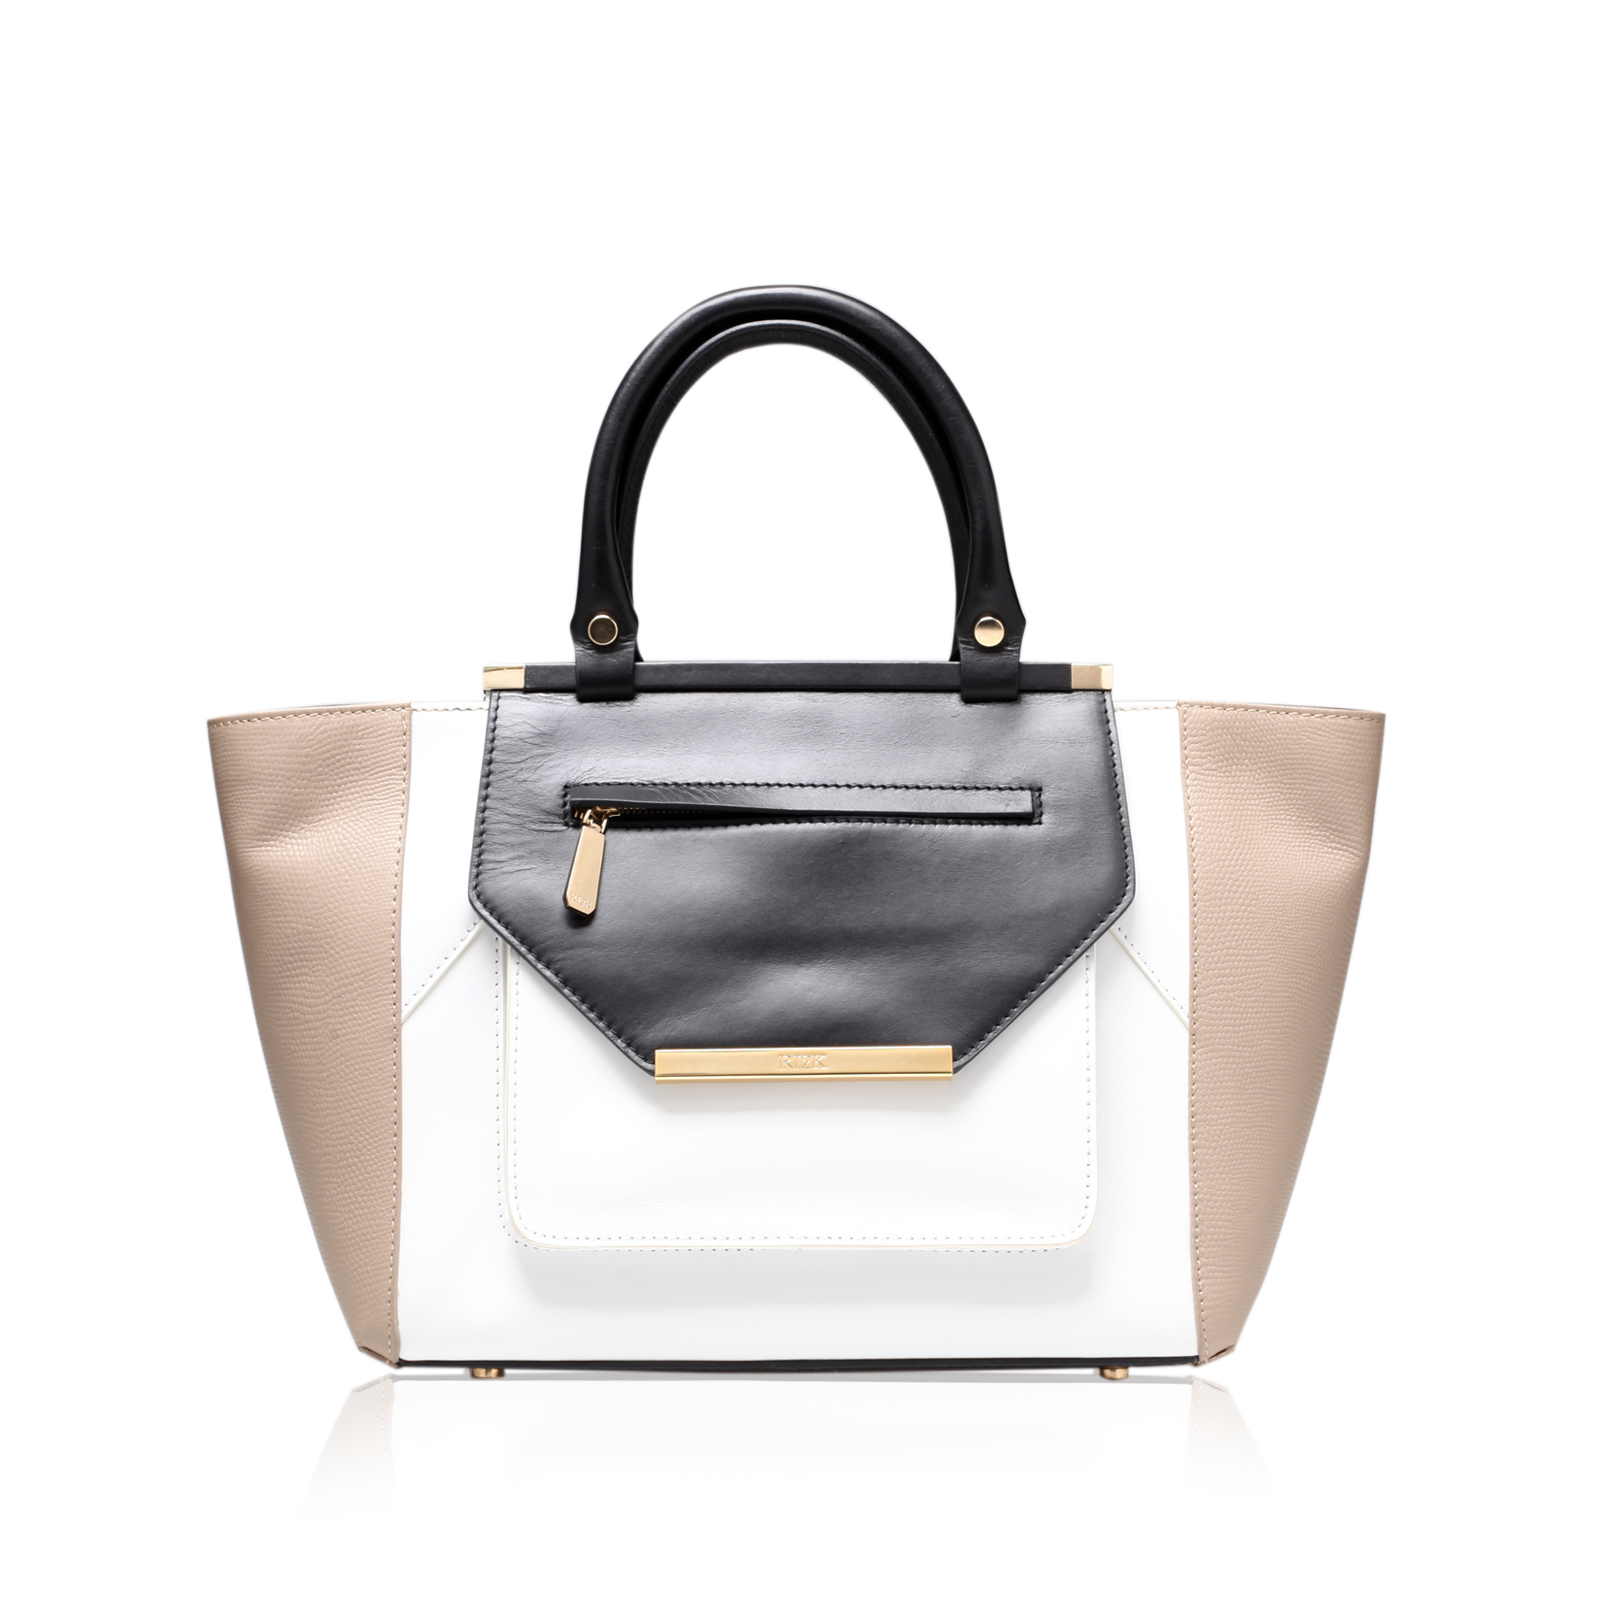 ISABELLA LEATHER BAG